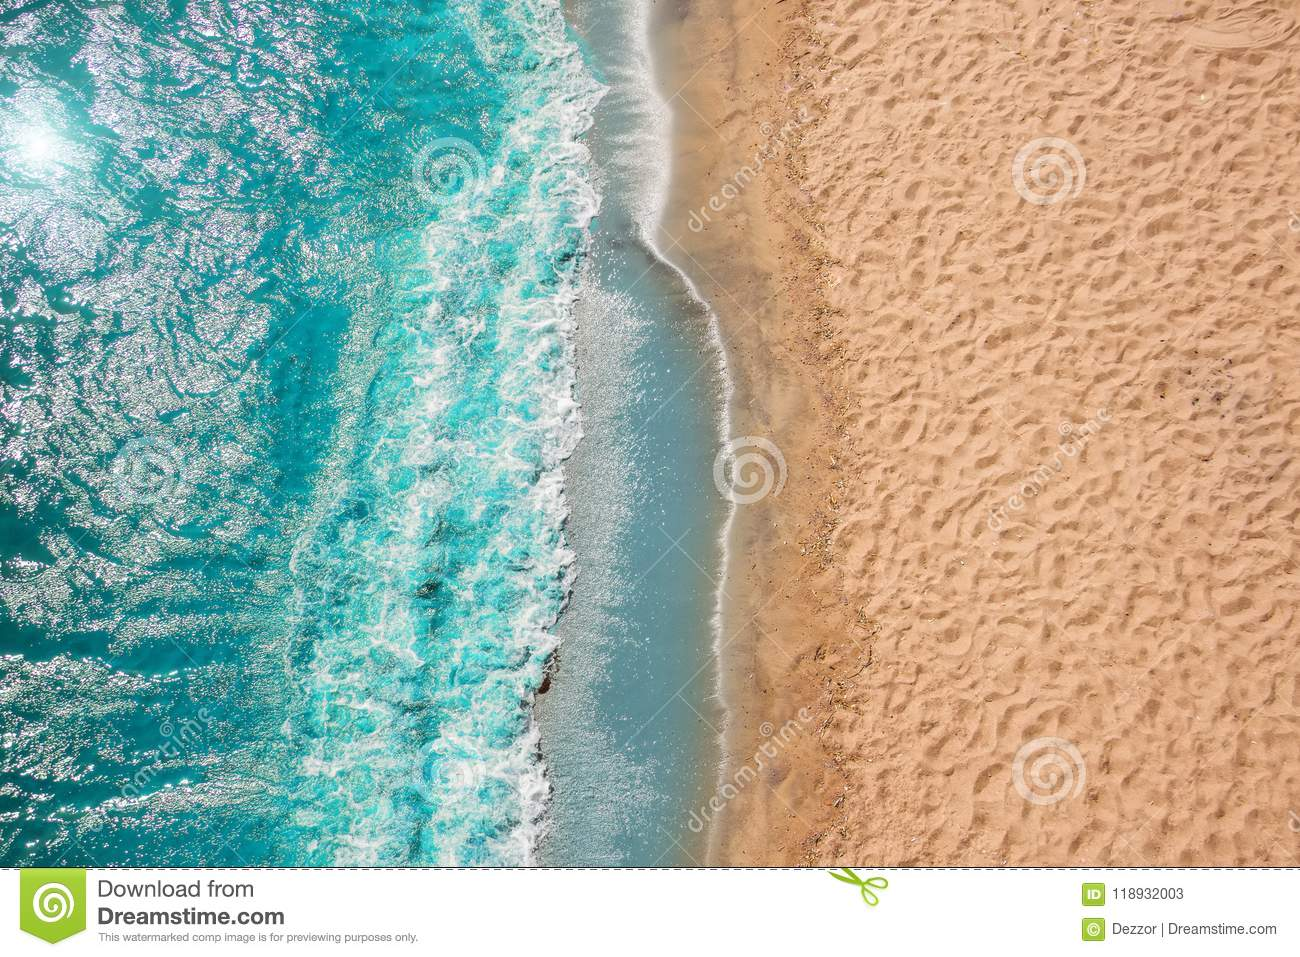 Coastline Beach Ocean waves with foam on the sand. Top view from drone.